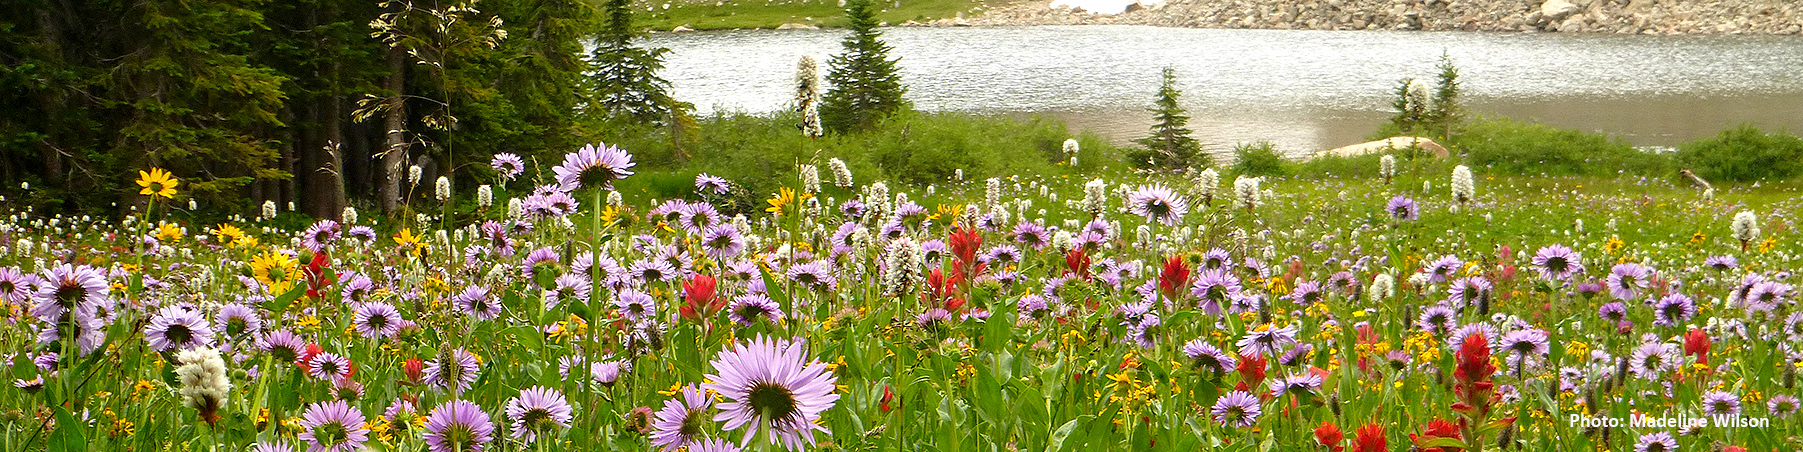 flowers Hutch lake MWilson